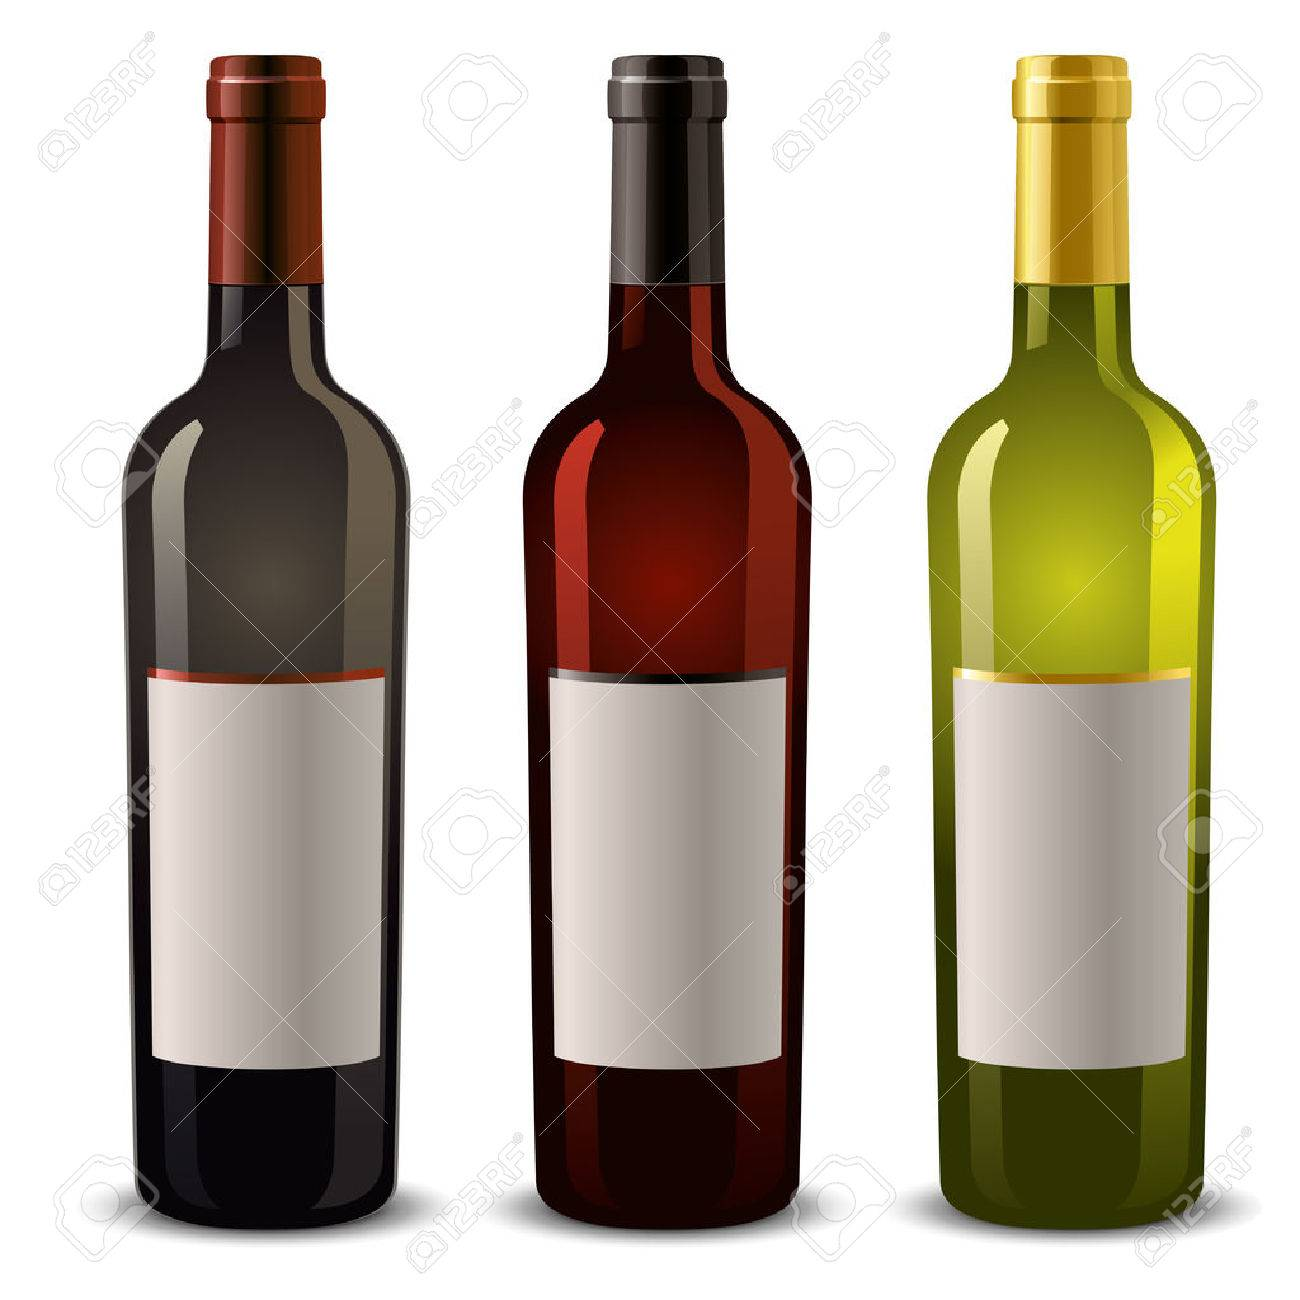 wine bottles with blank label - 54352563